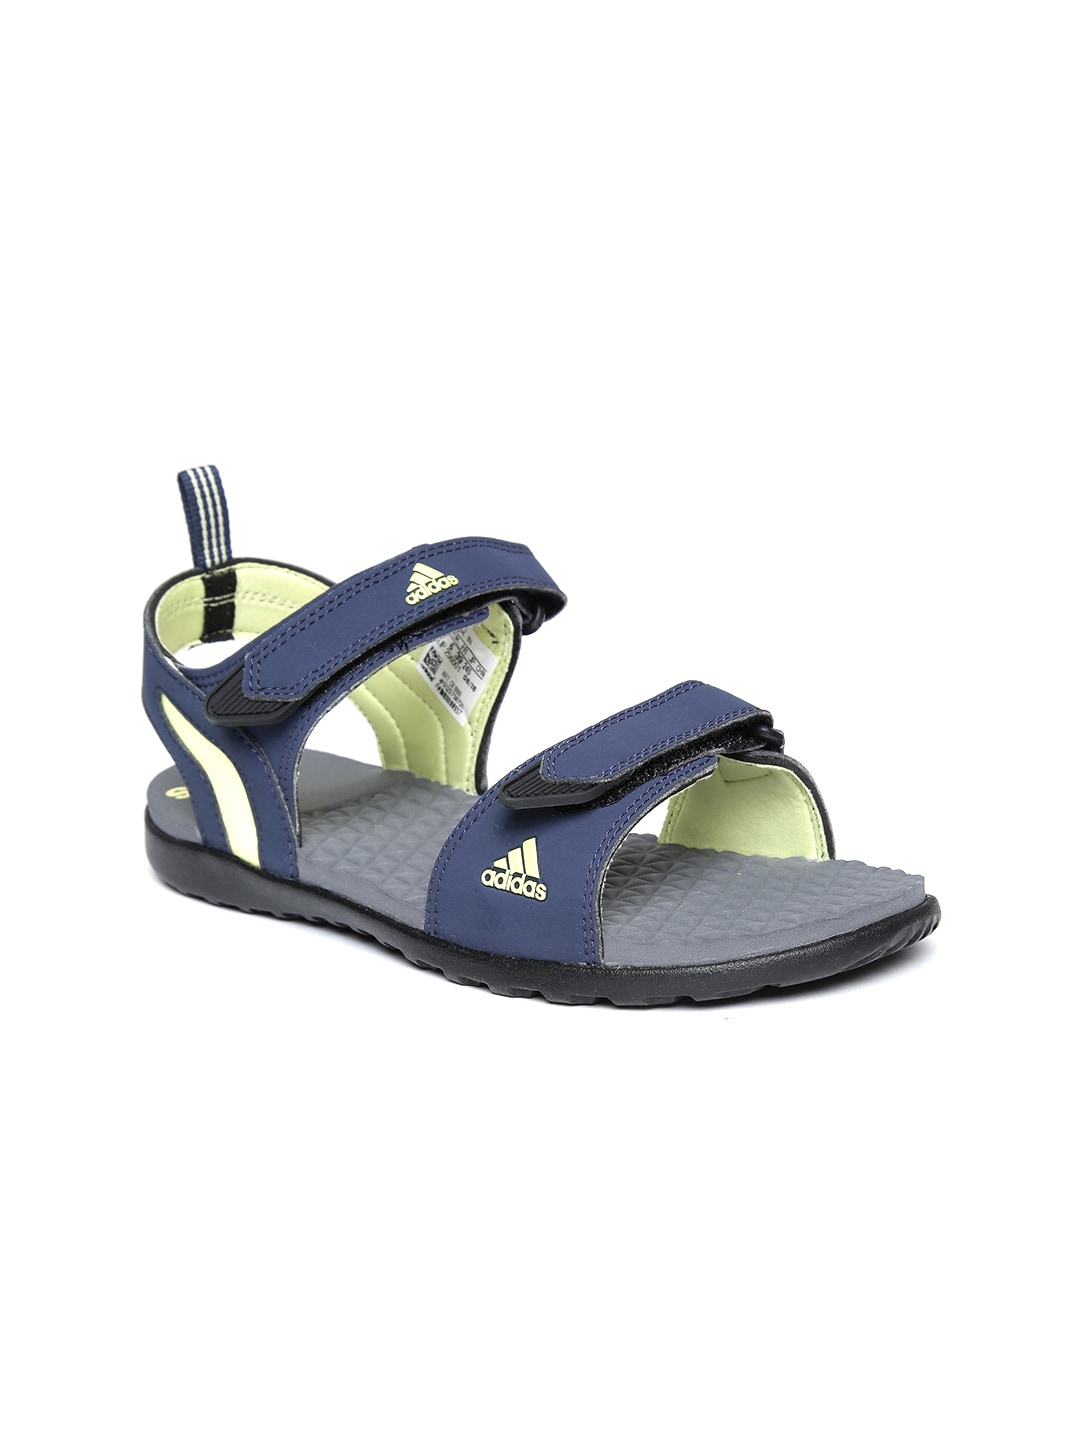 4af5add2b4bb Adidas Floaters - Buy Adidas Sports Sandals Online in India